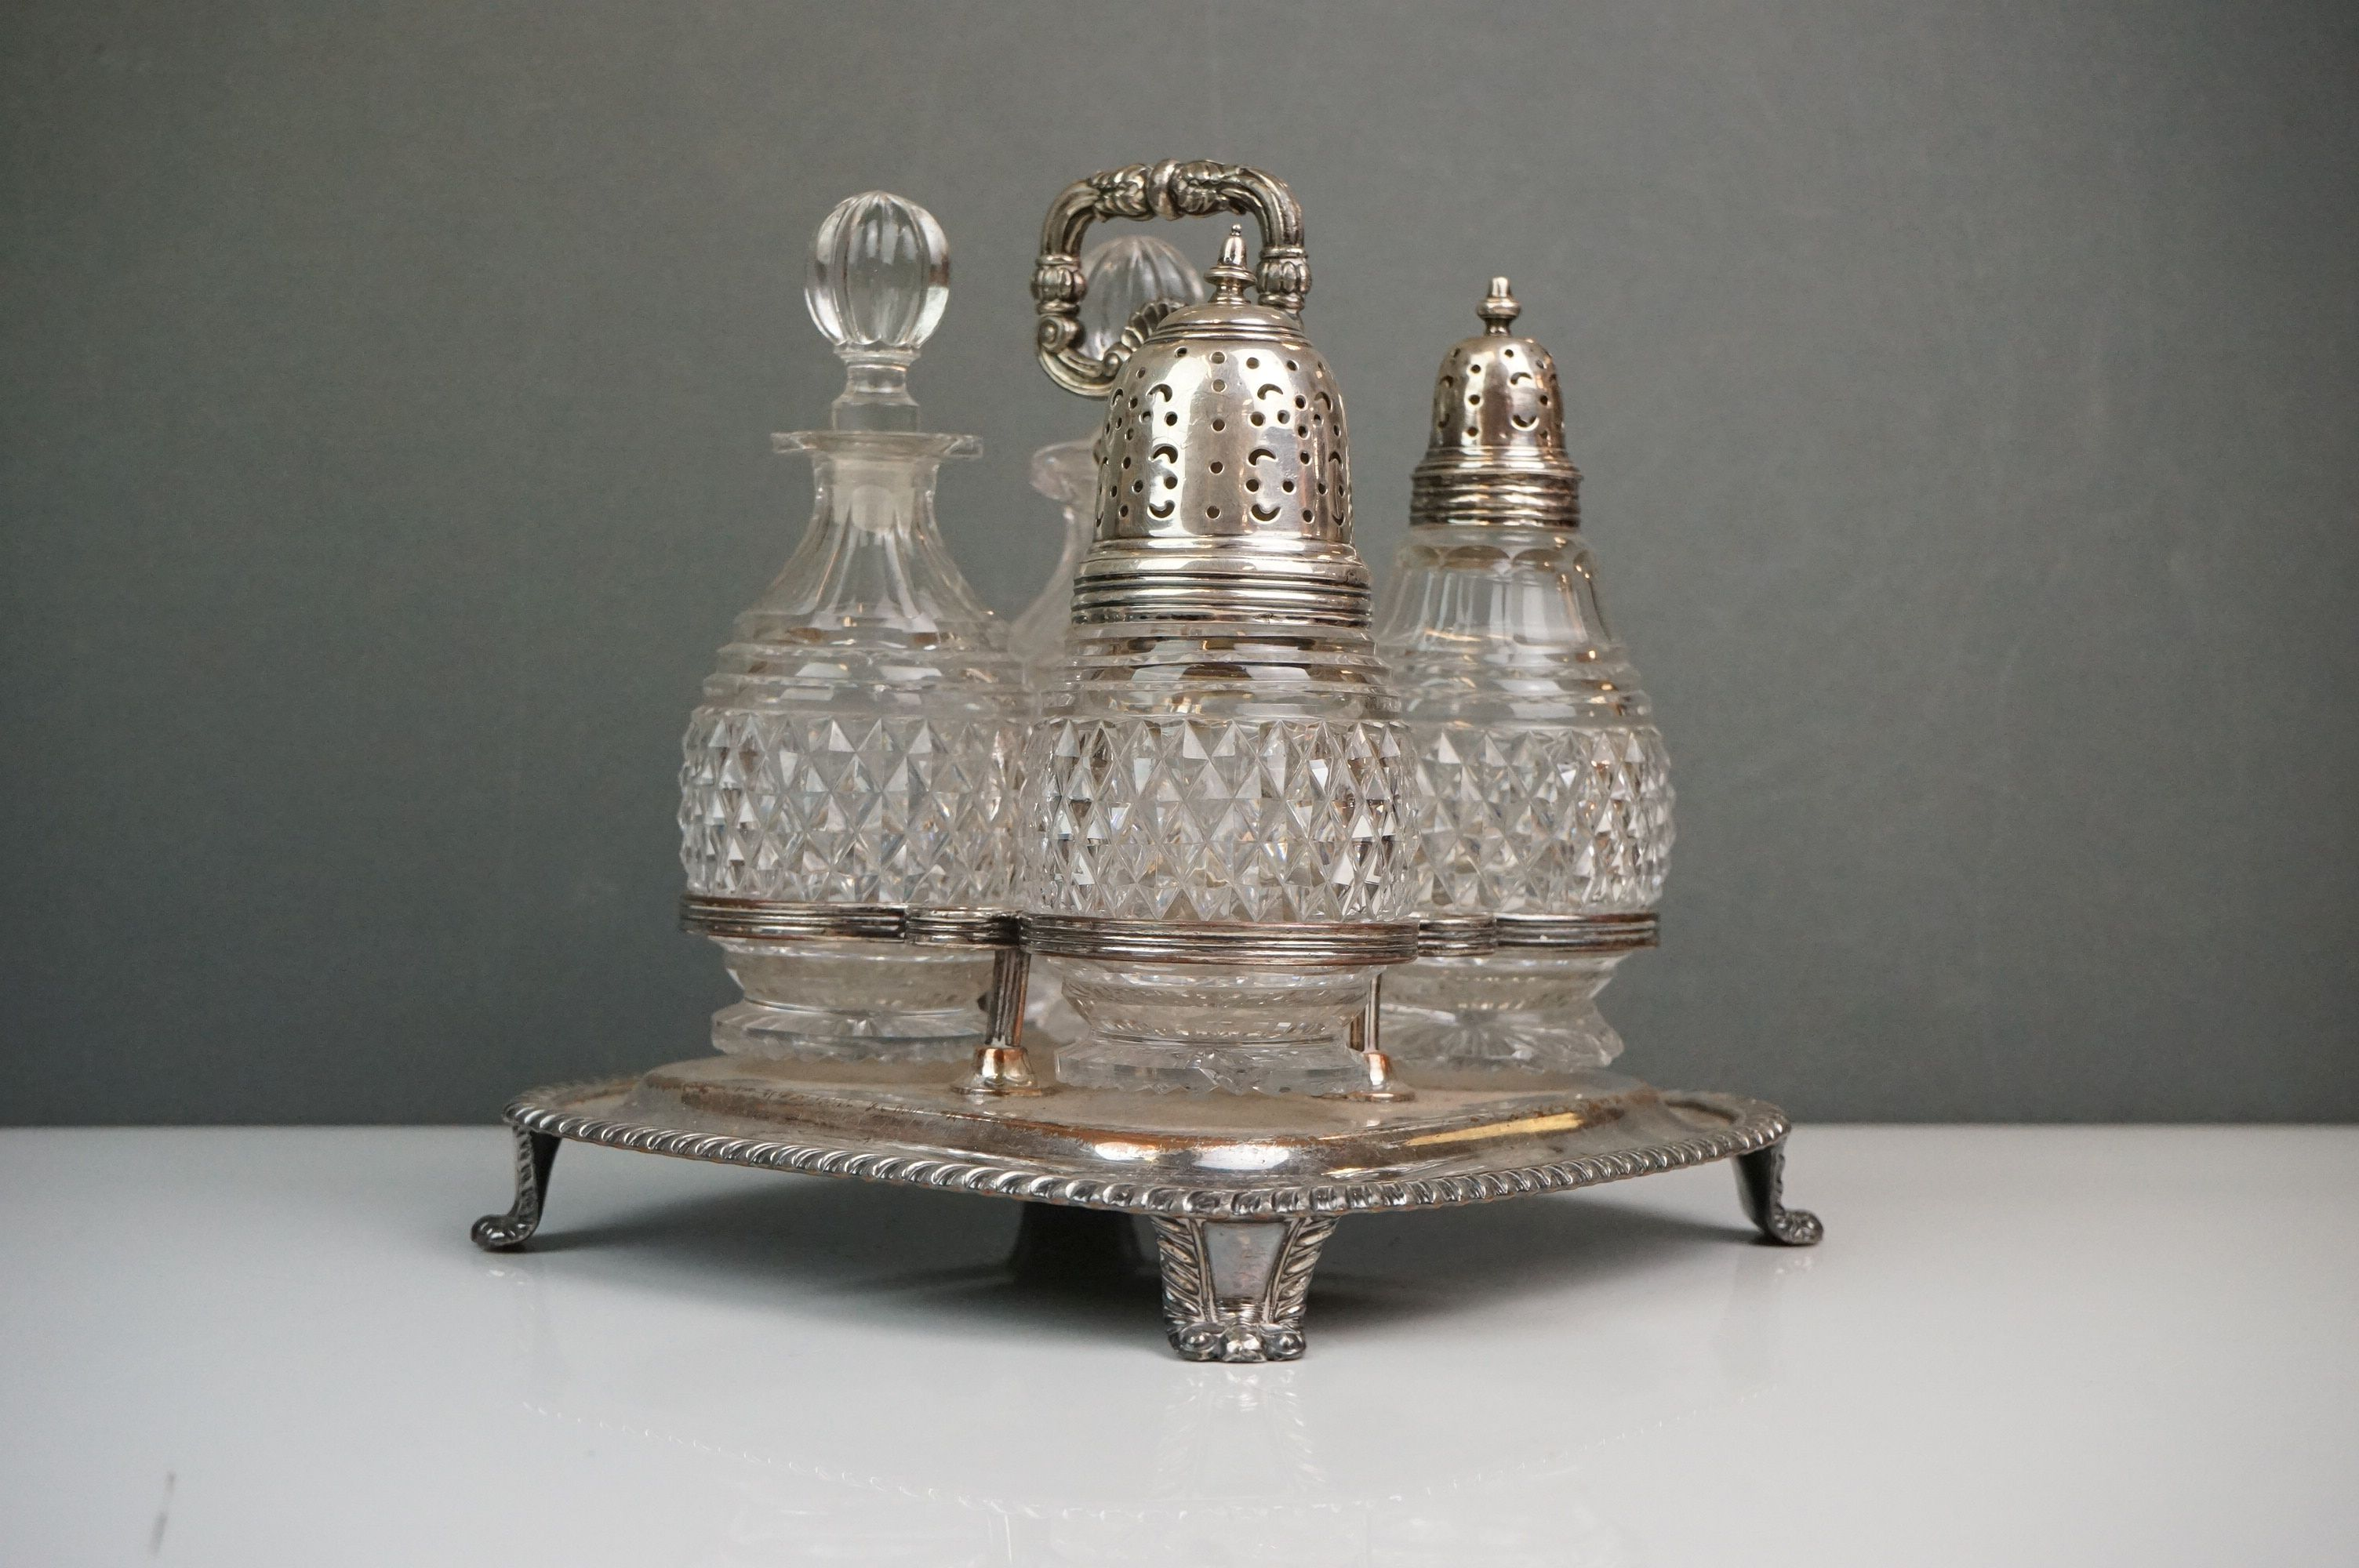 Silver plate - a Victorian four bottle cruet with cut glass bottles, WMF bowl with raised scroll - Image 5 of 6